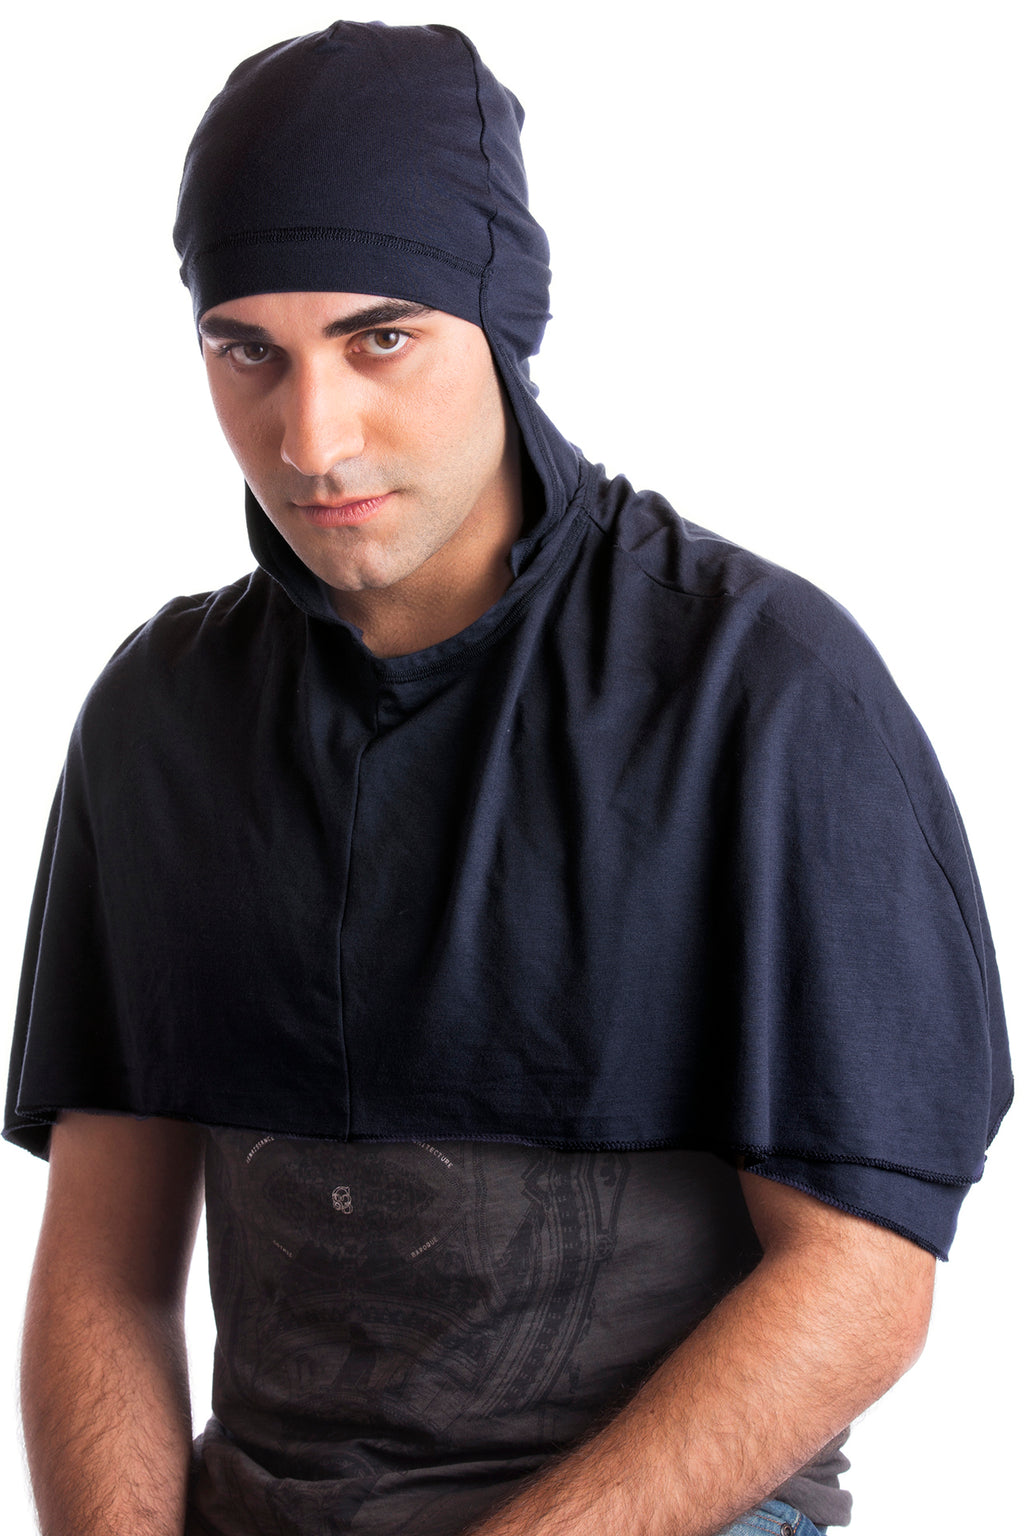 Hooded Cotton Cape Poncho for Men - Navy